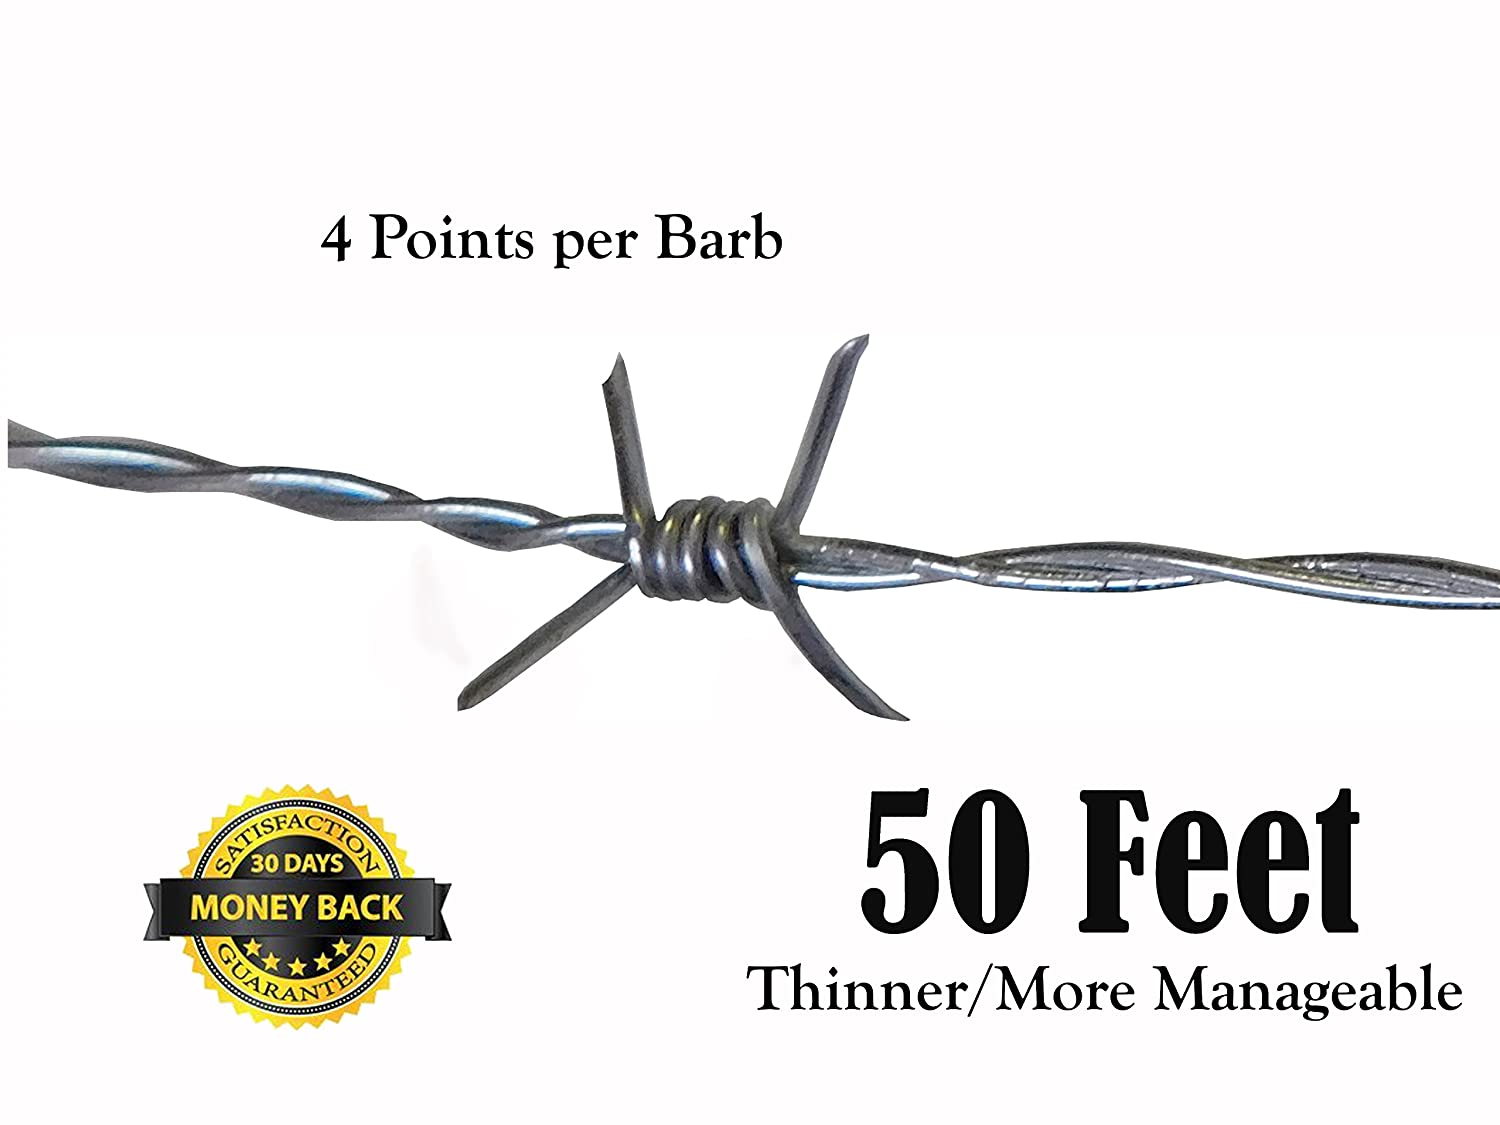 Amazon.com: 50 Feet Real Barbed Wire - Light Duty 18 gauge 4 pt MADE ...